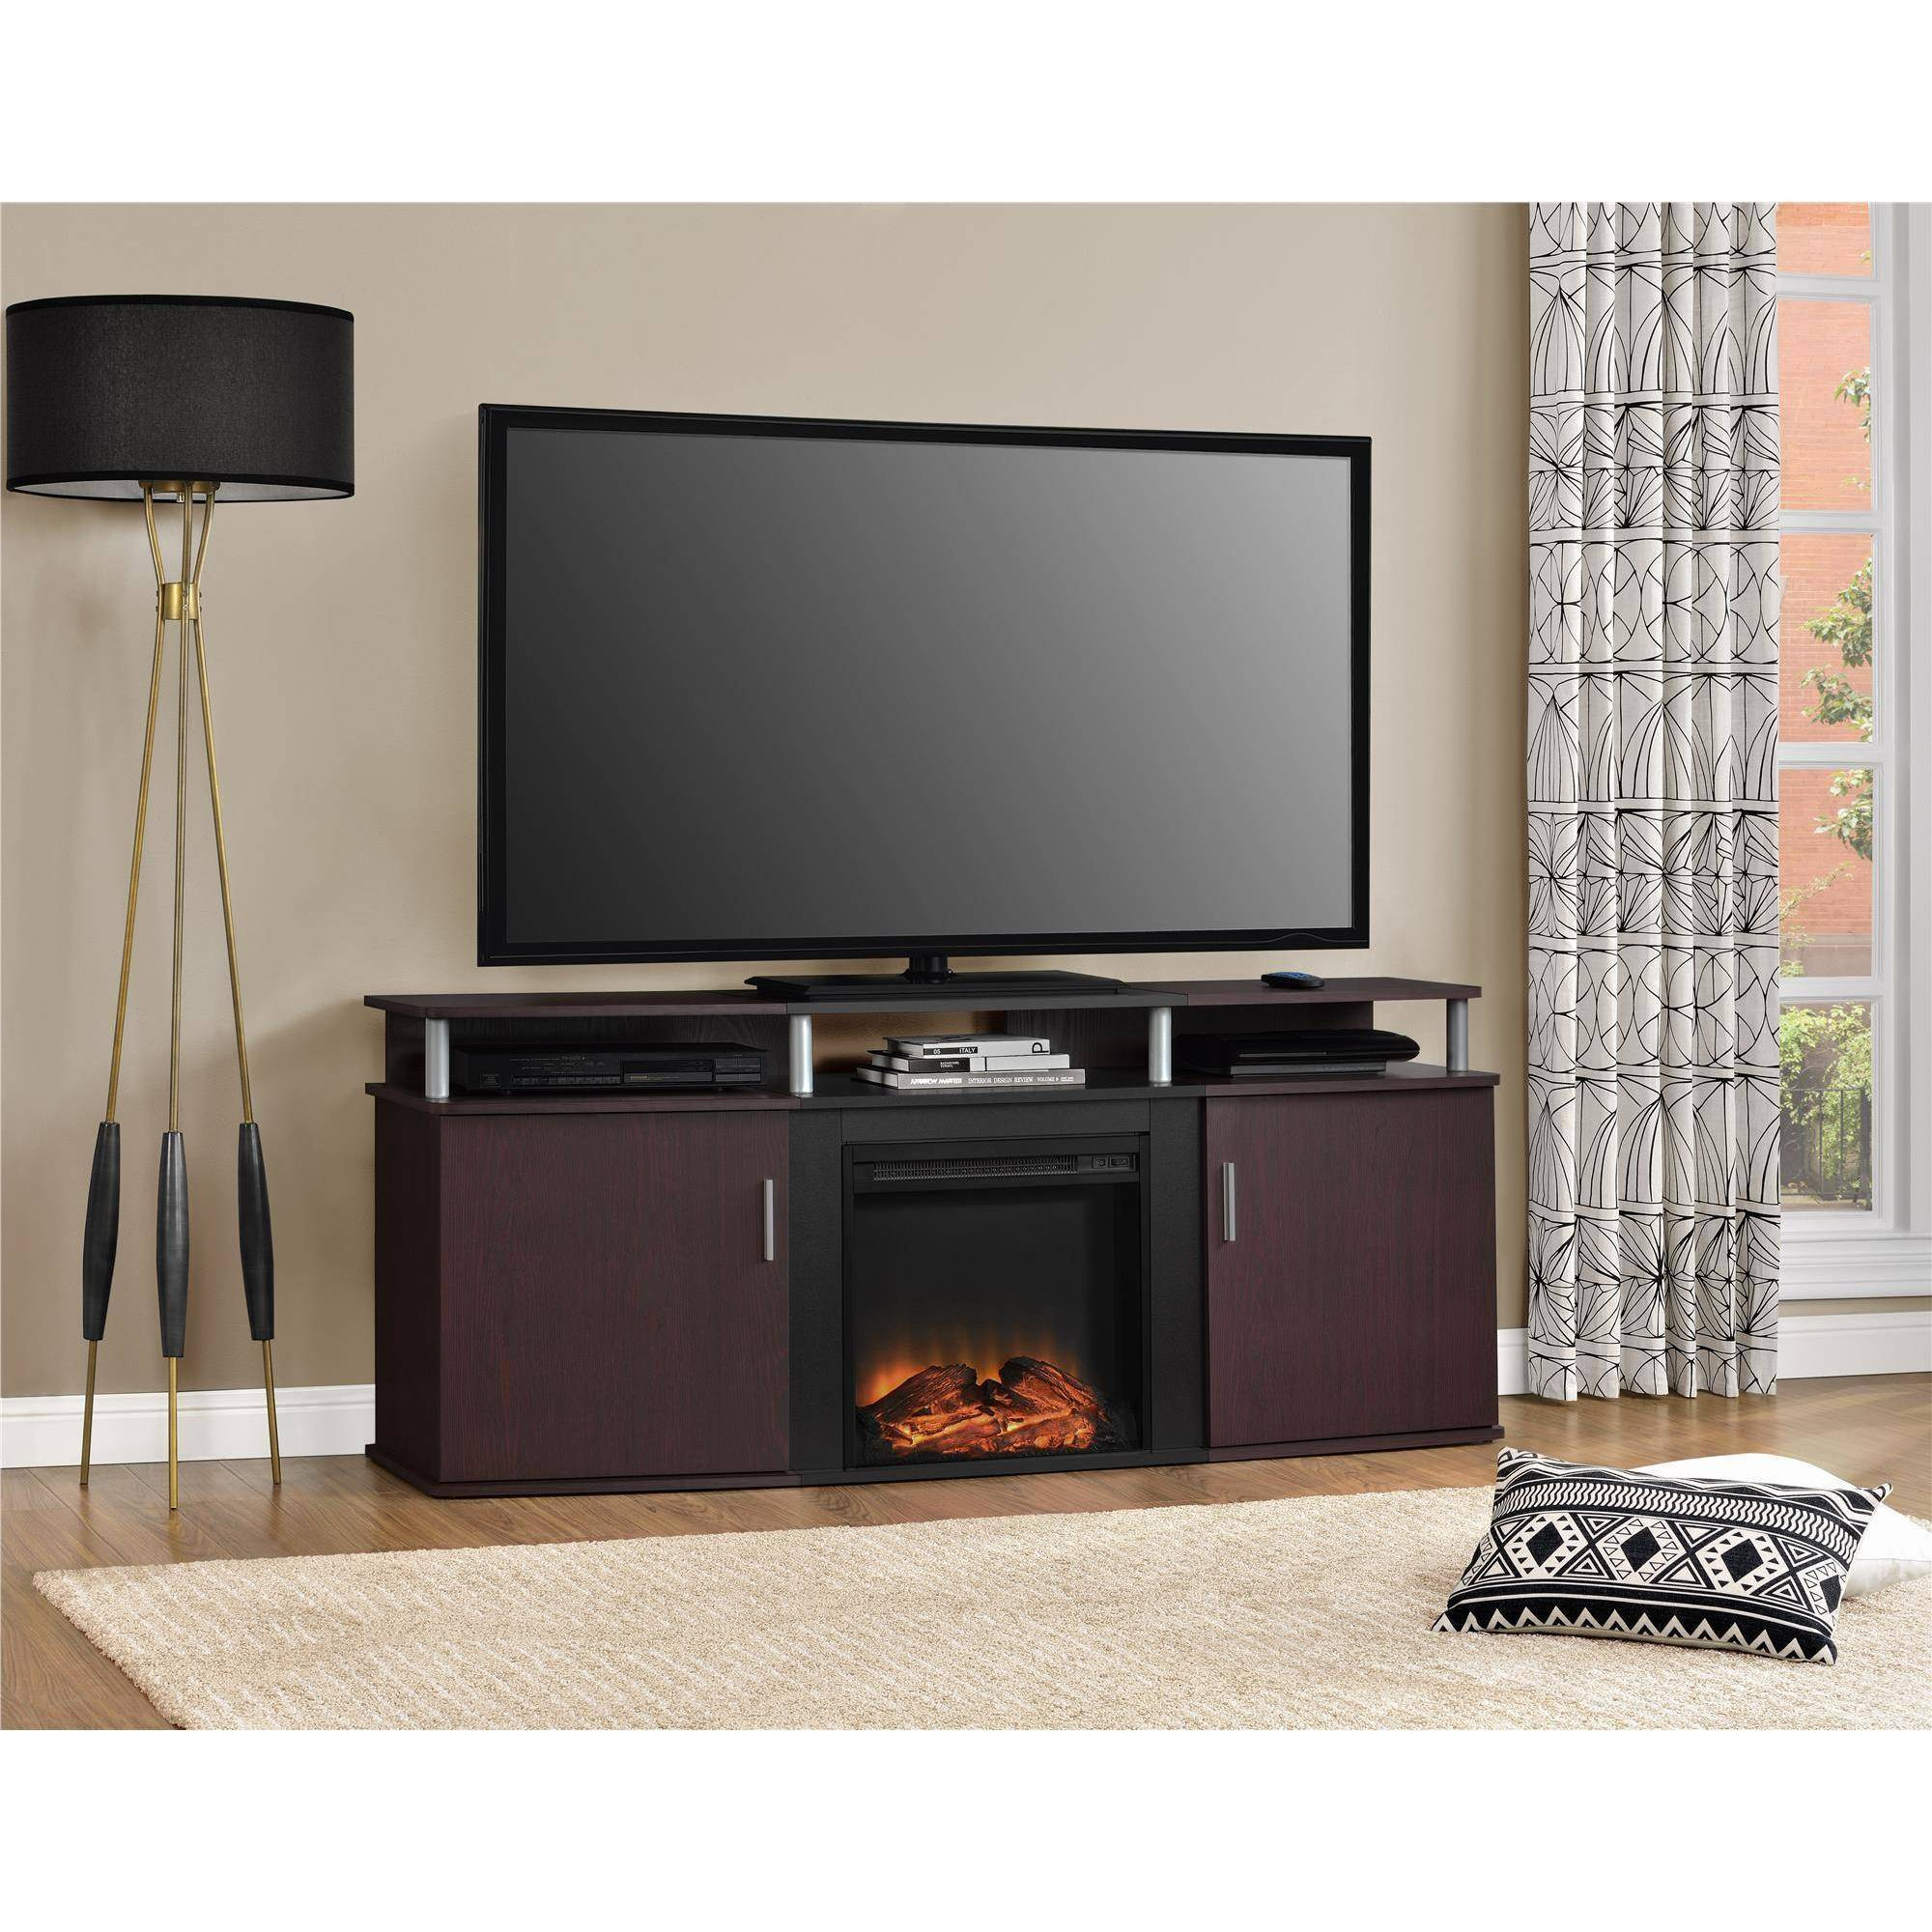 "Ameriwood Home Carson Electric Fireplace TV Console for TVs up to 70"", Cherry/Black"